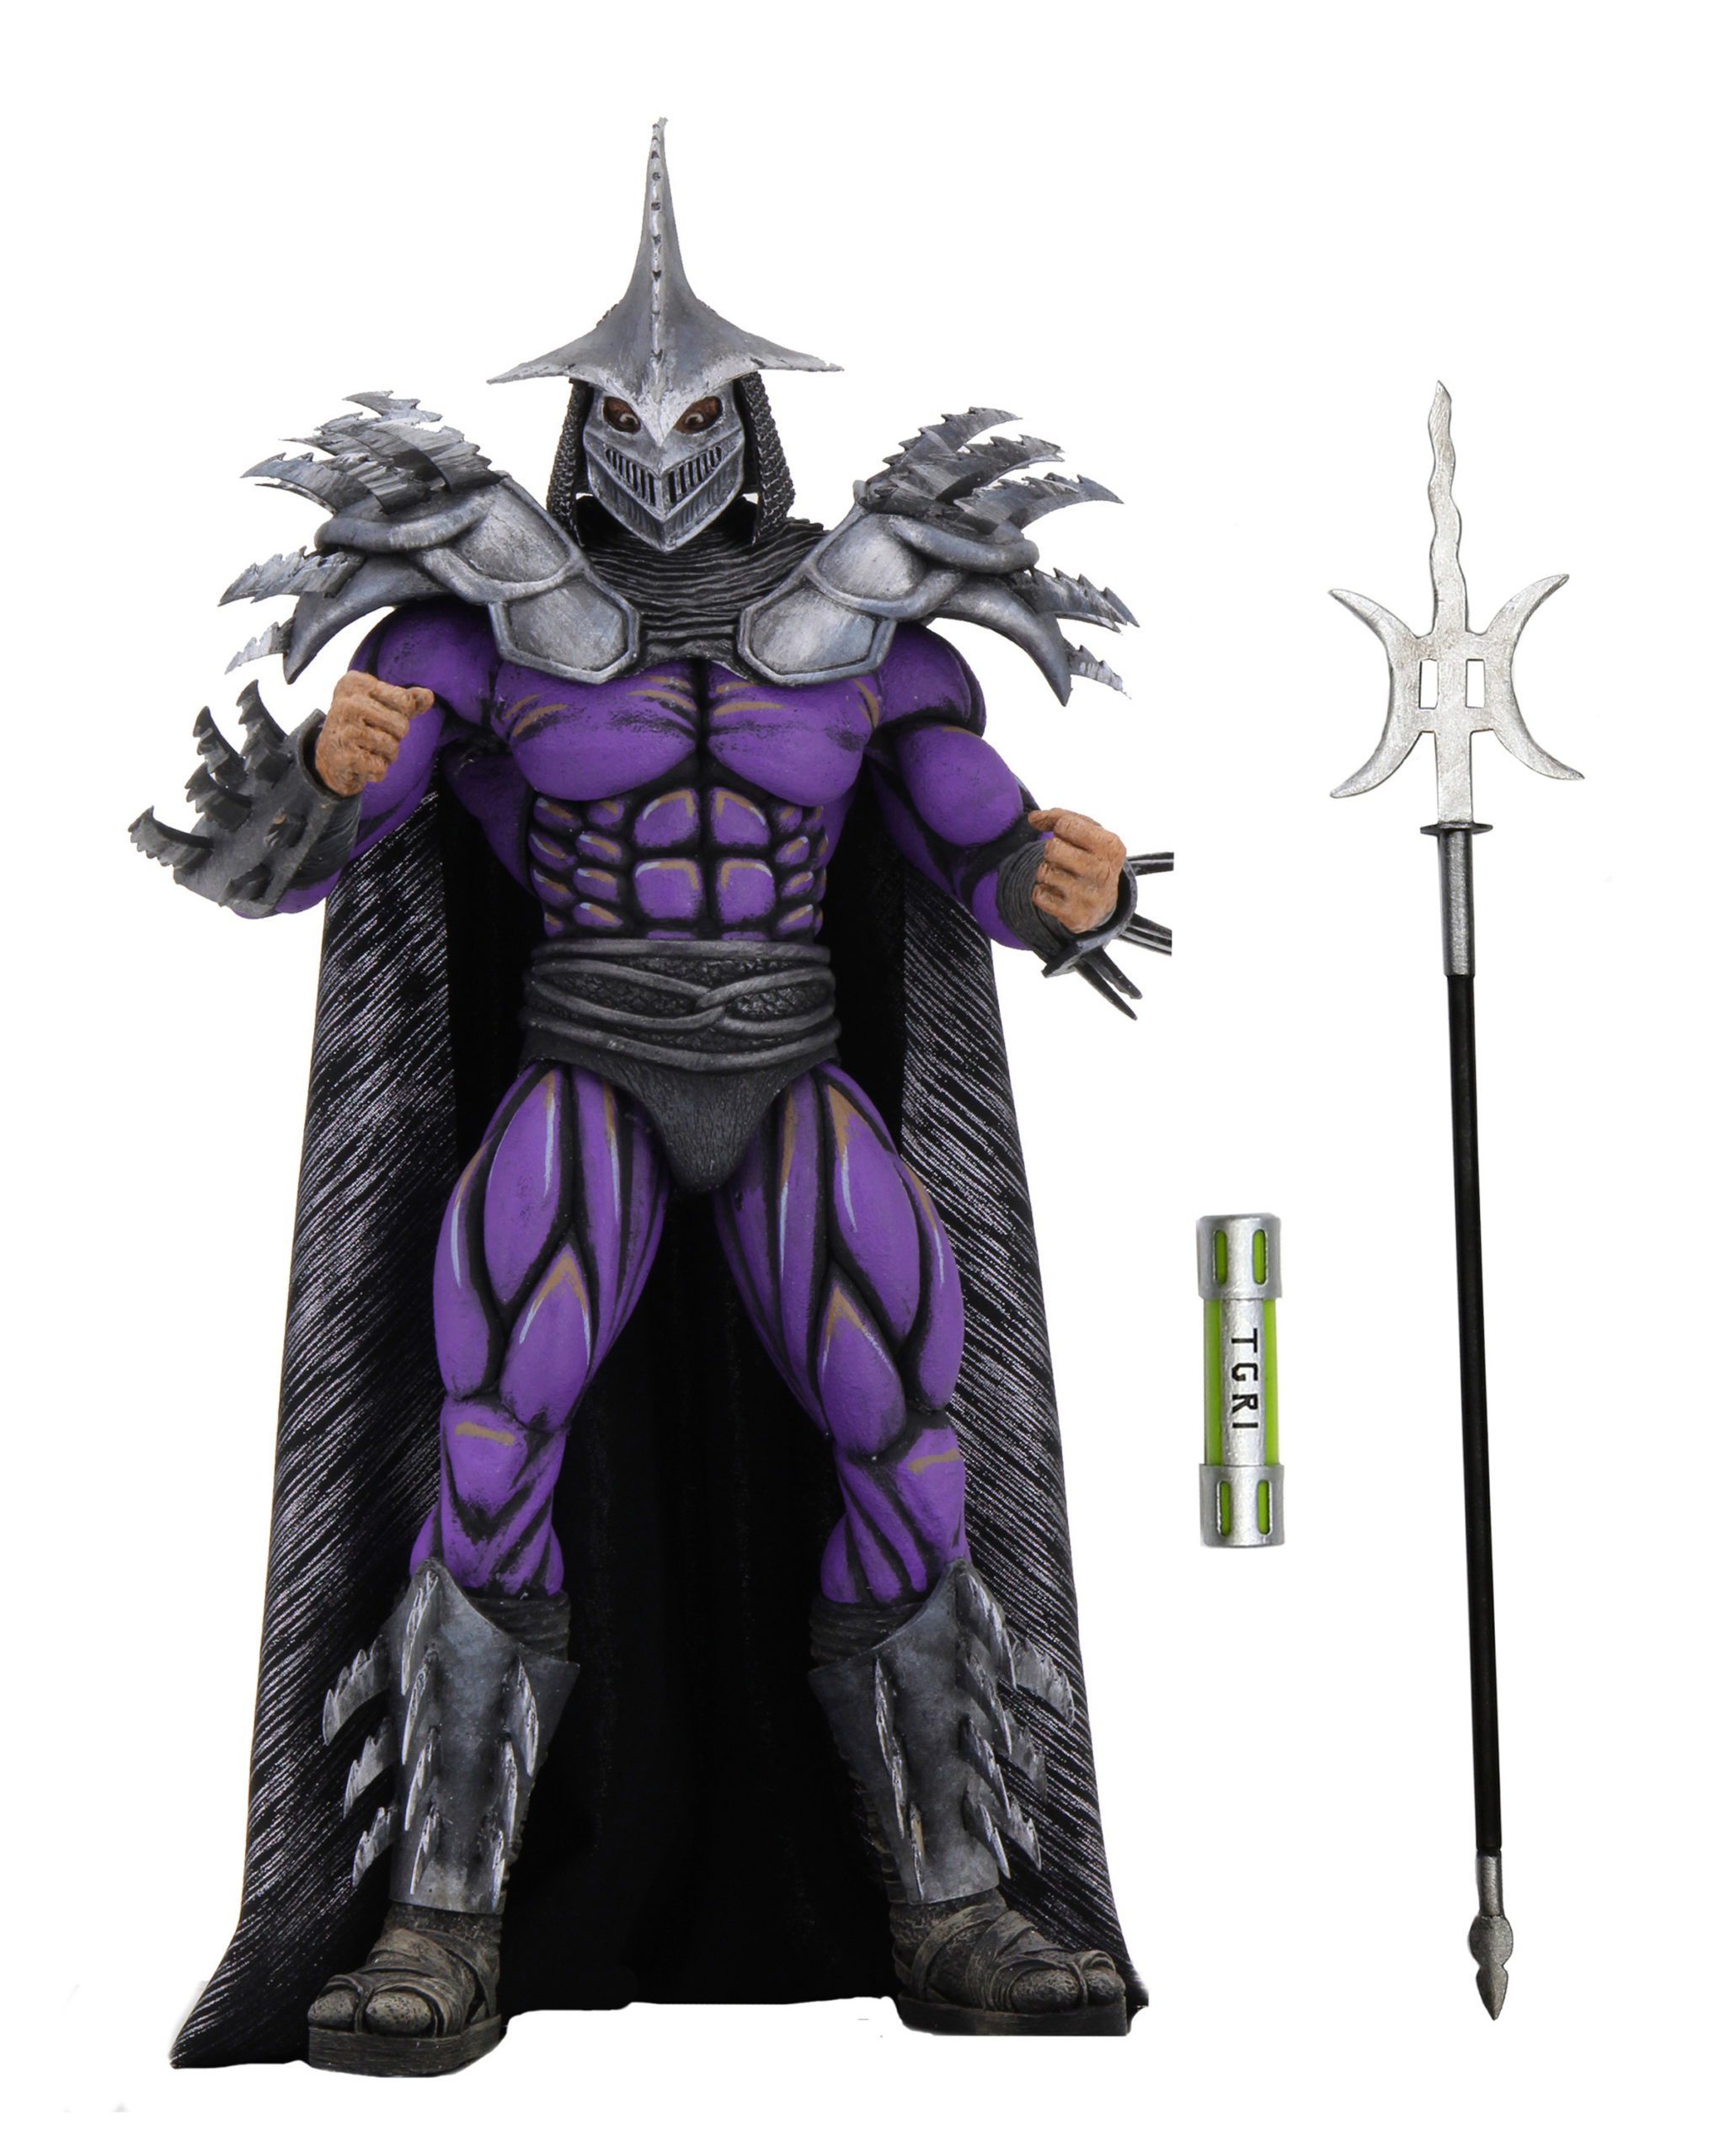 tmnt 2003 shredder action figure